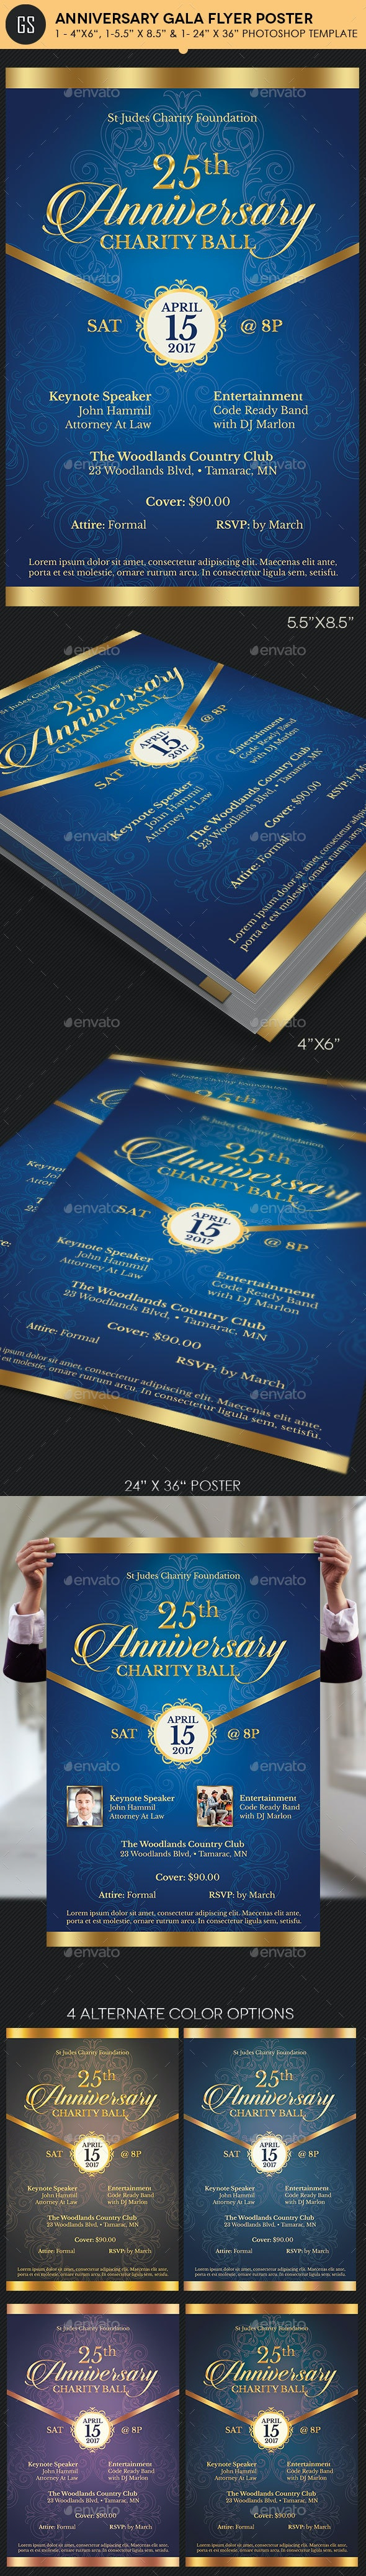 Blue Anniversary Gala Flyer Poster Template - Events Flyers